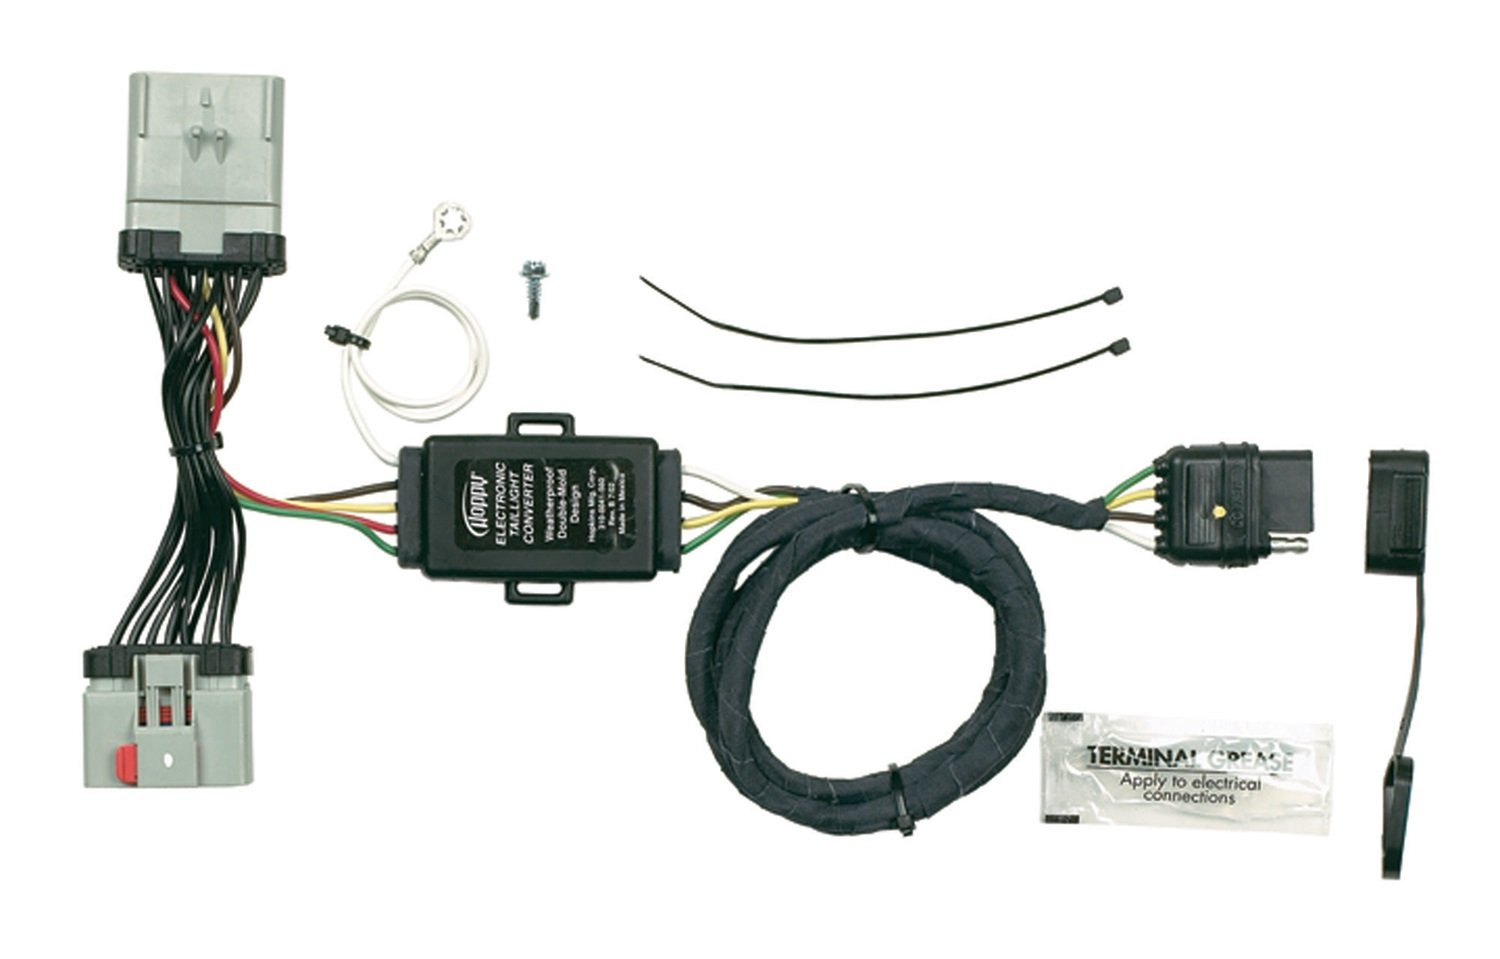 61a1DM22CCL._SL1500_ amazon com hopkins 42475 plug in simple vehicle wiring kit 2005 jeep liberty trailer wiring harness at gsmx.co